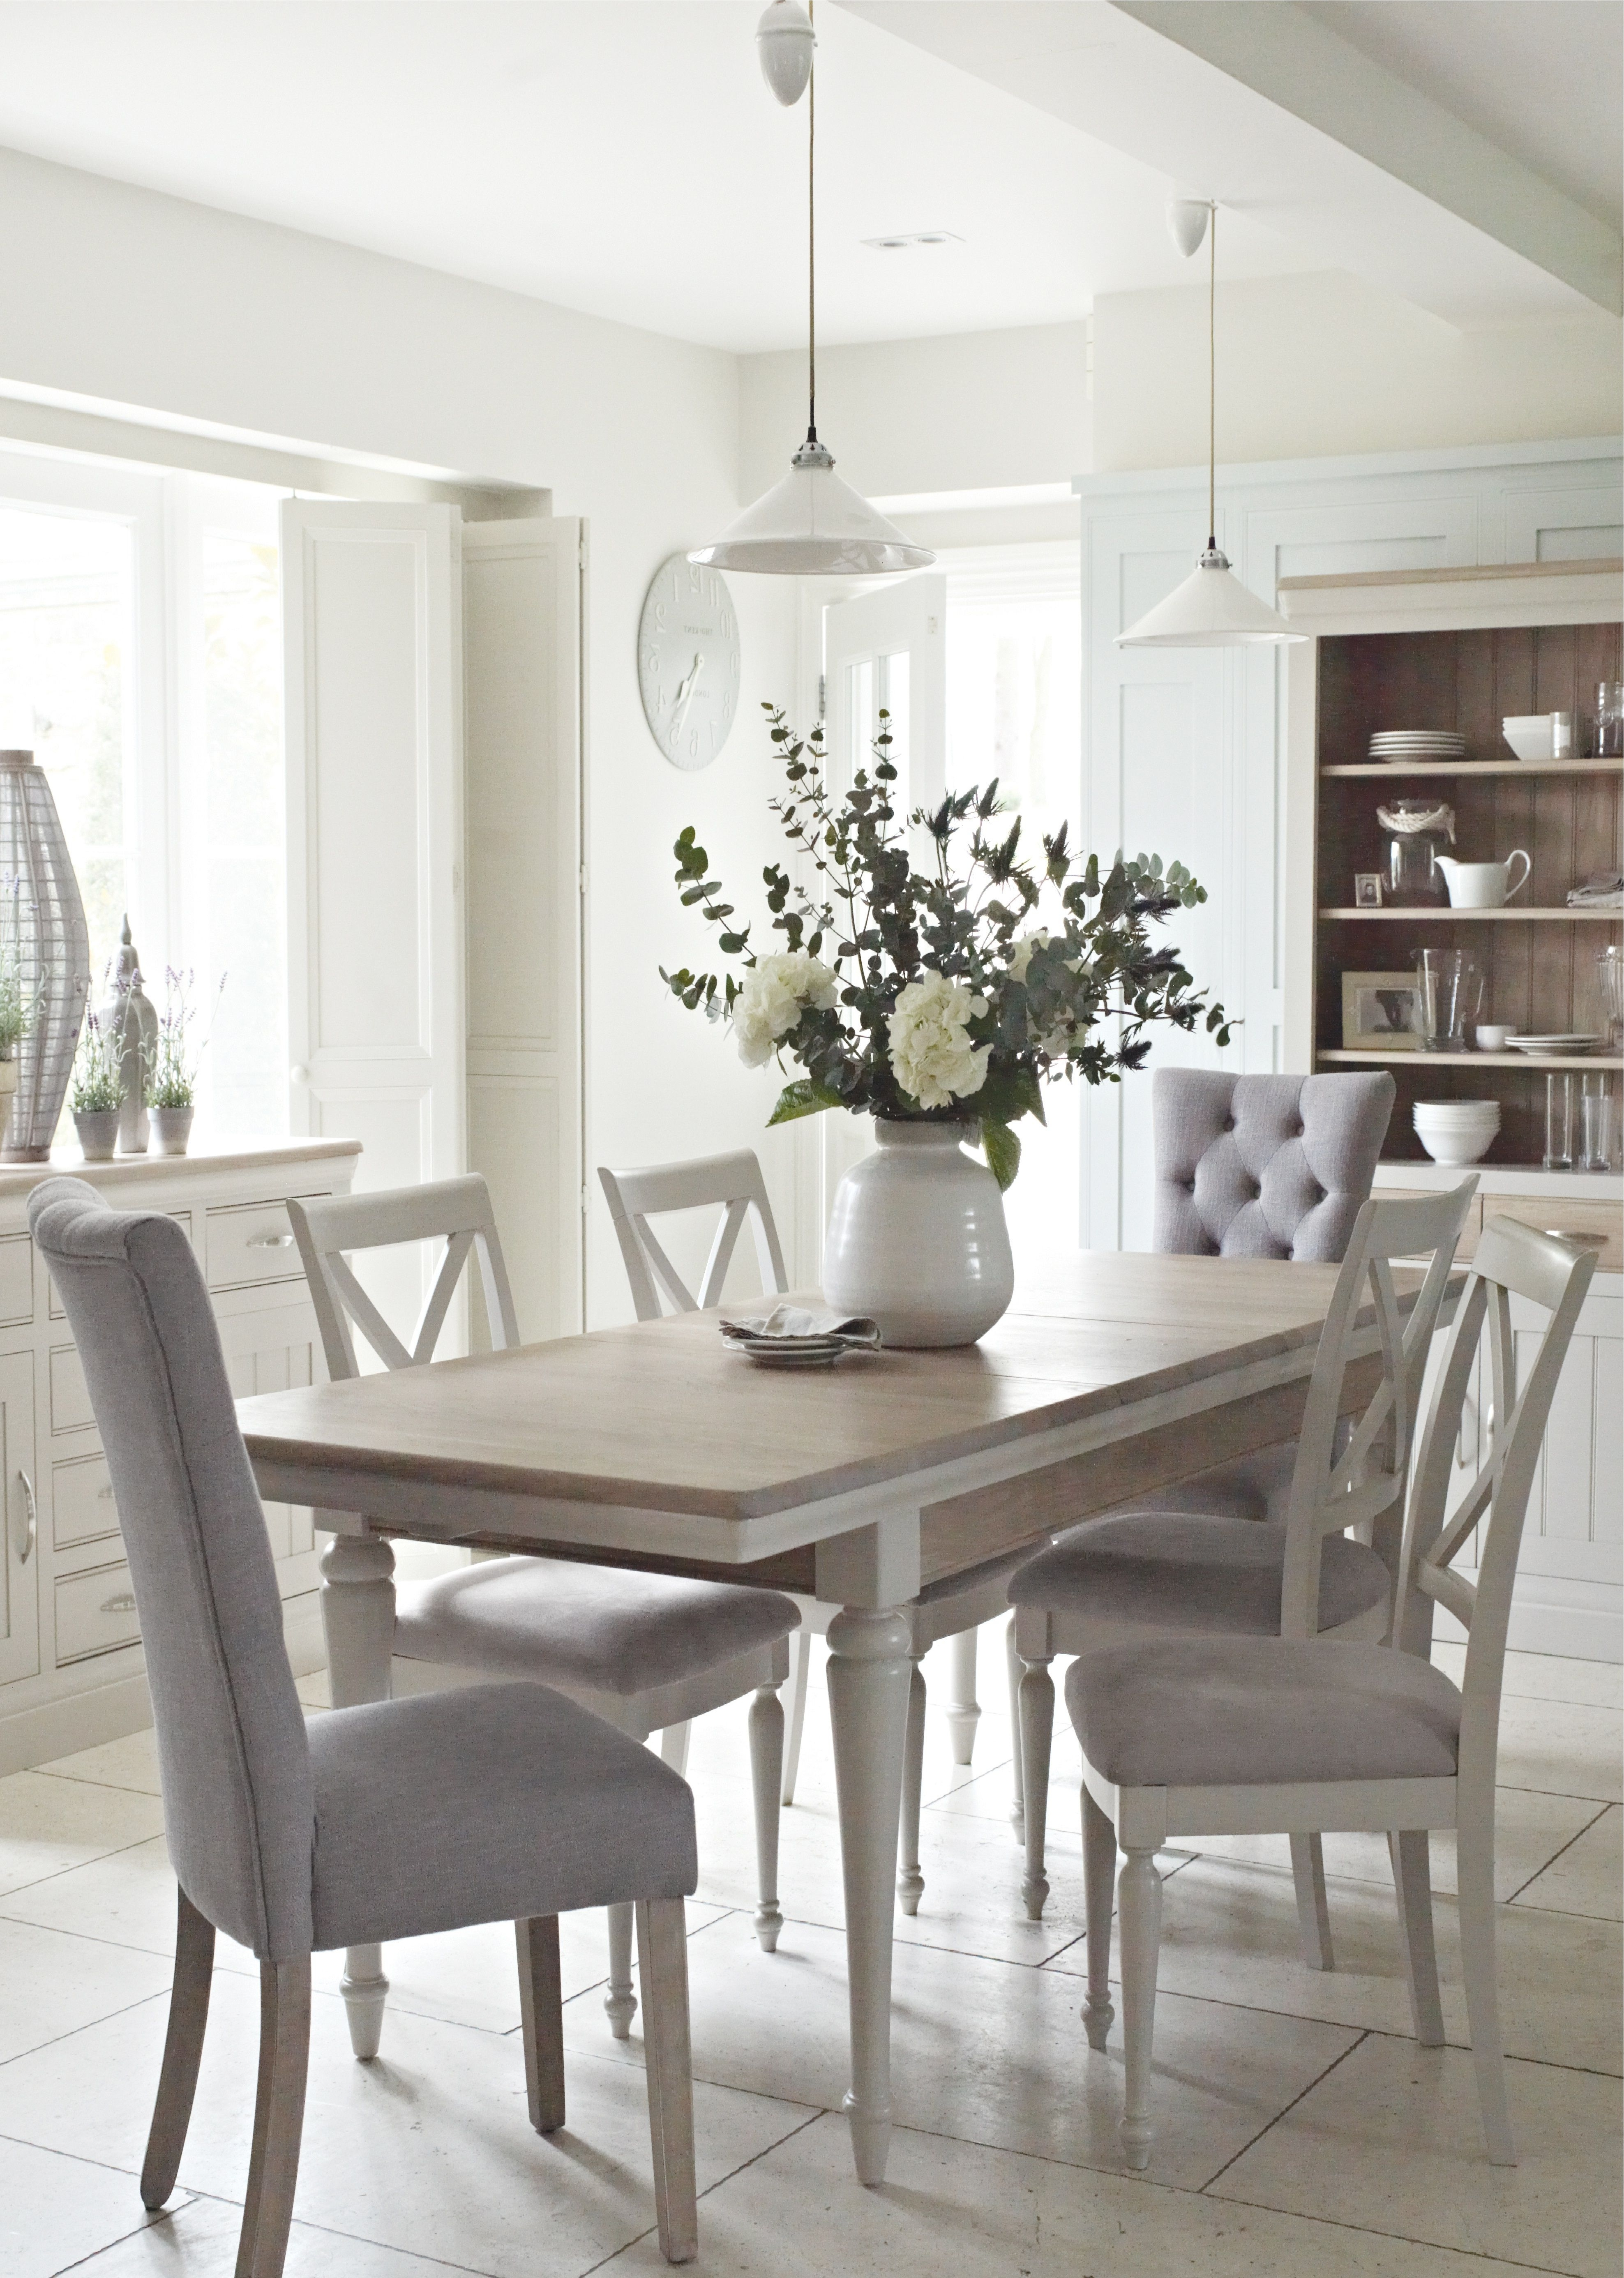 Kirsten 6 Piece Dining Sets Intended For Well Known The Classic Bambury Dining Range Just Oozes Country Chic (View 6 of 25)